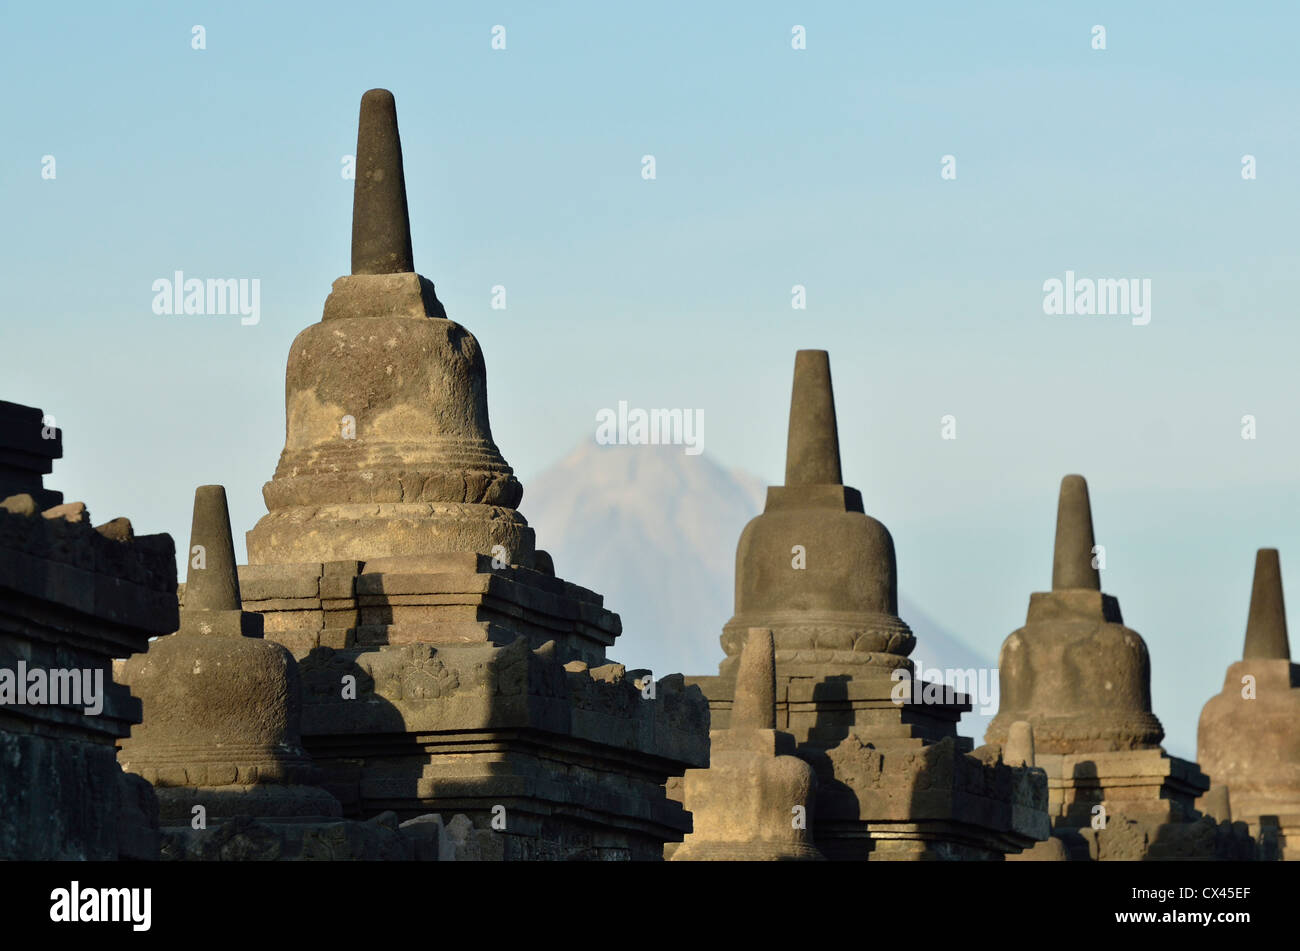 The stupa and the Merapi at the gorgeous buddhist temple of Borobudur; Central Java, Indonesia. - Stock Image